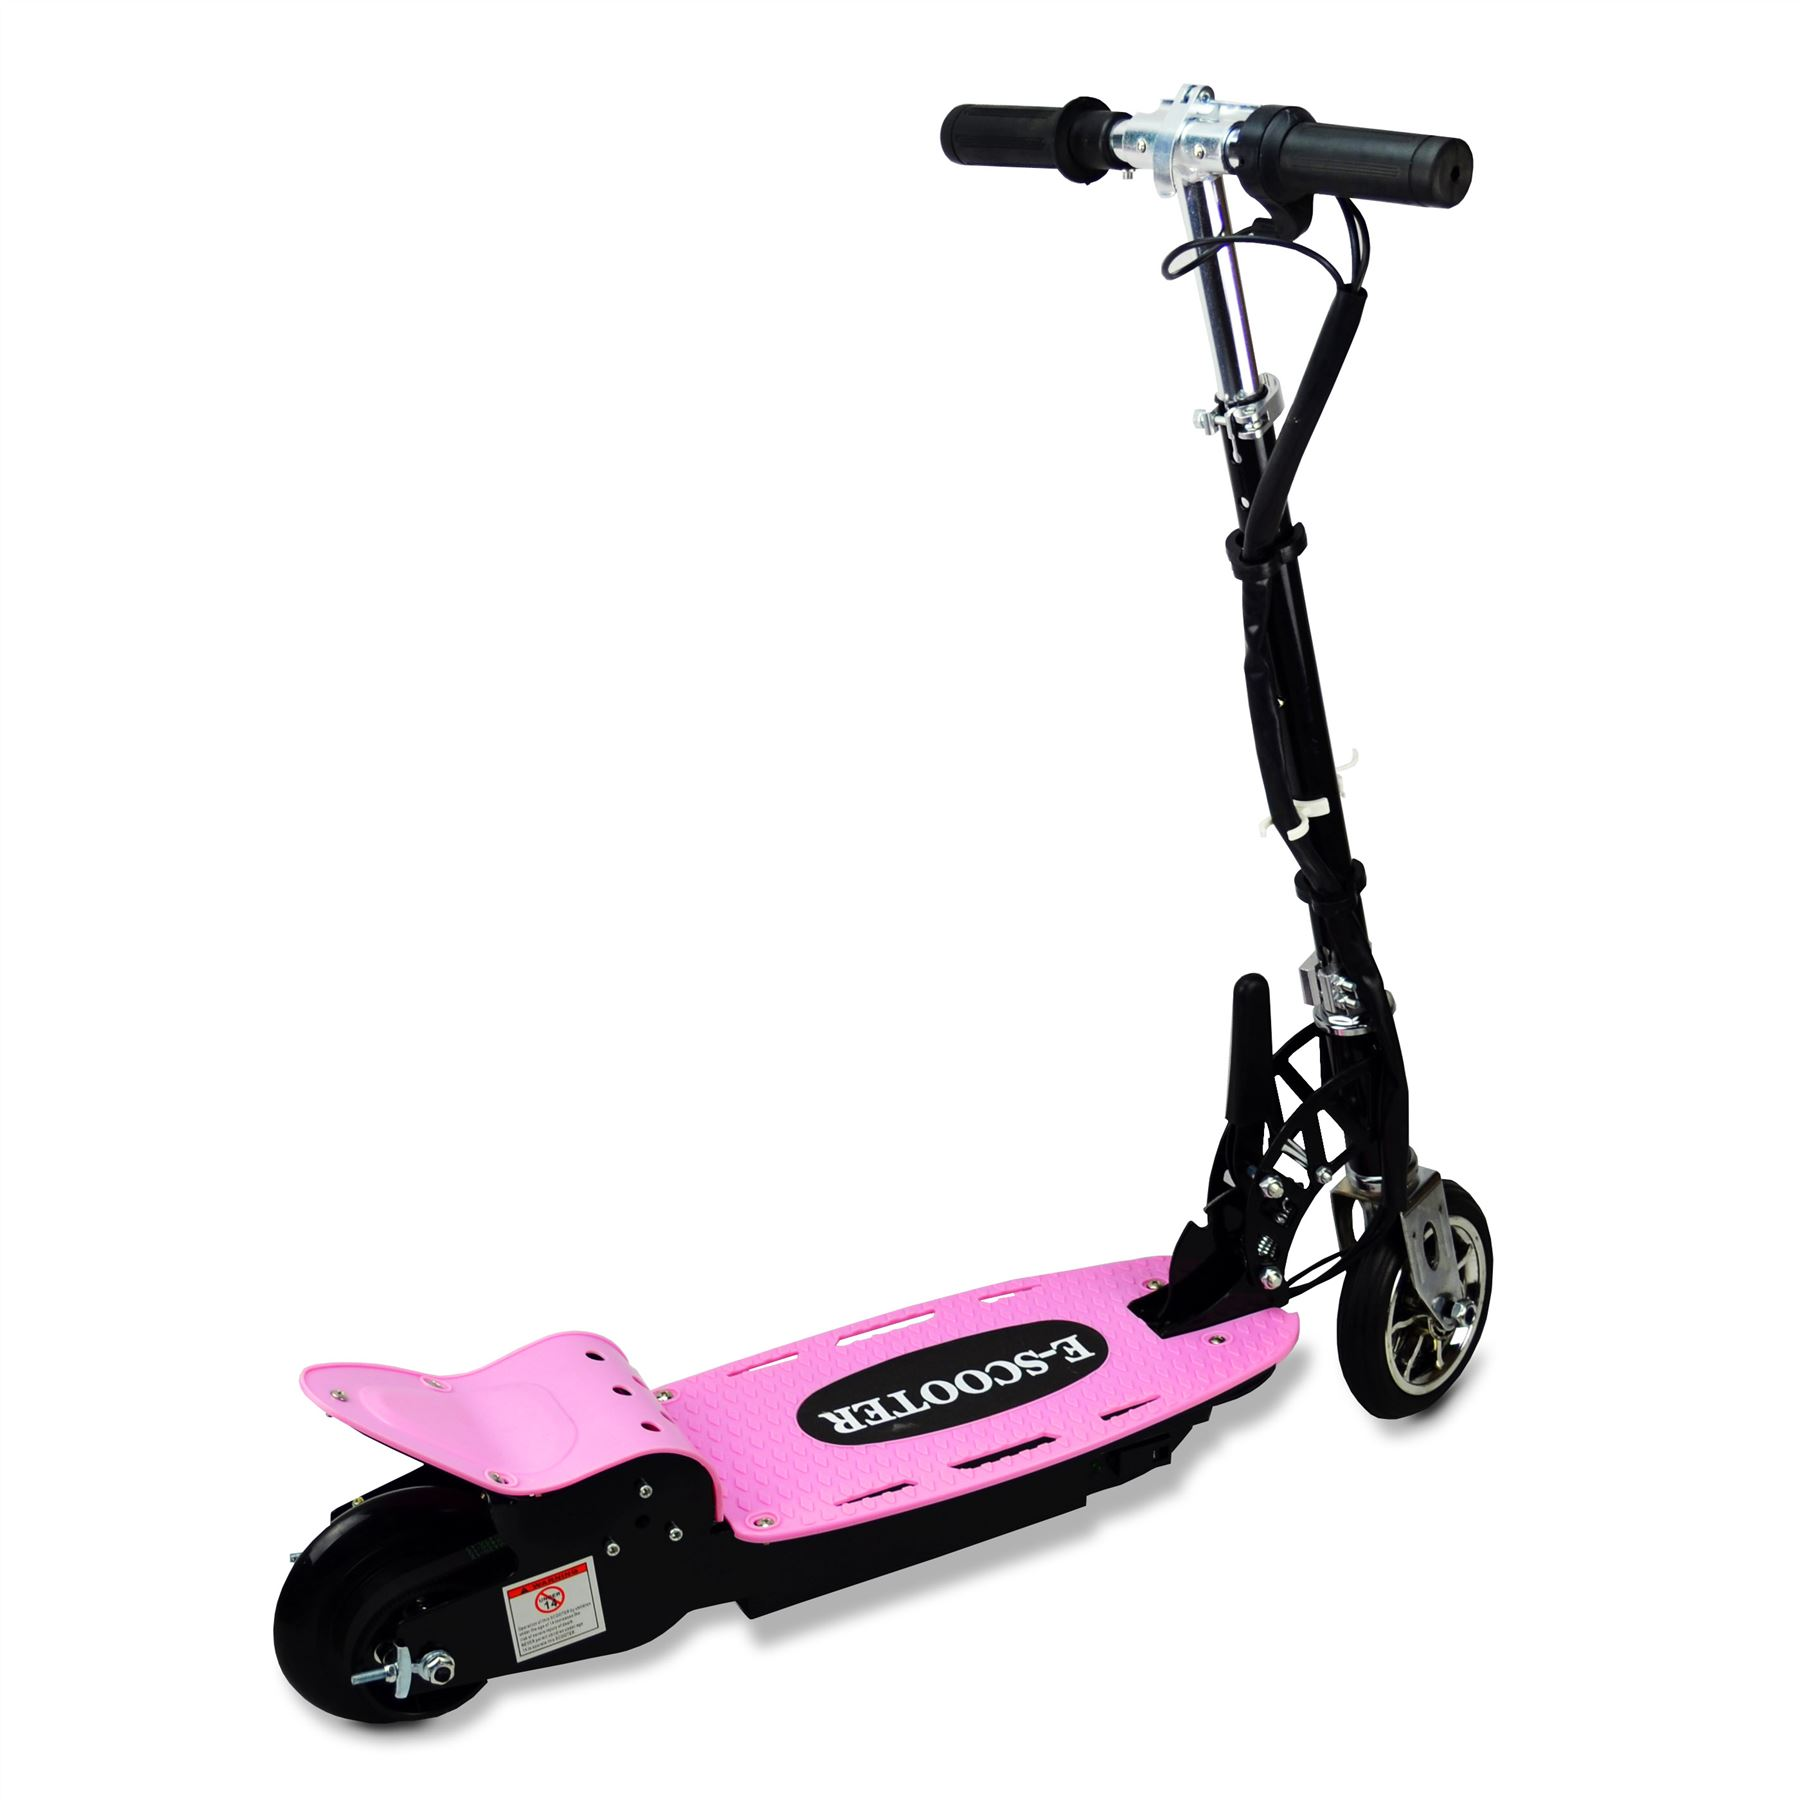 new electric e scooter kids children ride on toys 120w 12v battery ebay. Black Bedroom Furniture Sets. Home Design Ideas